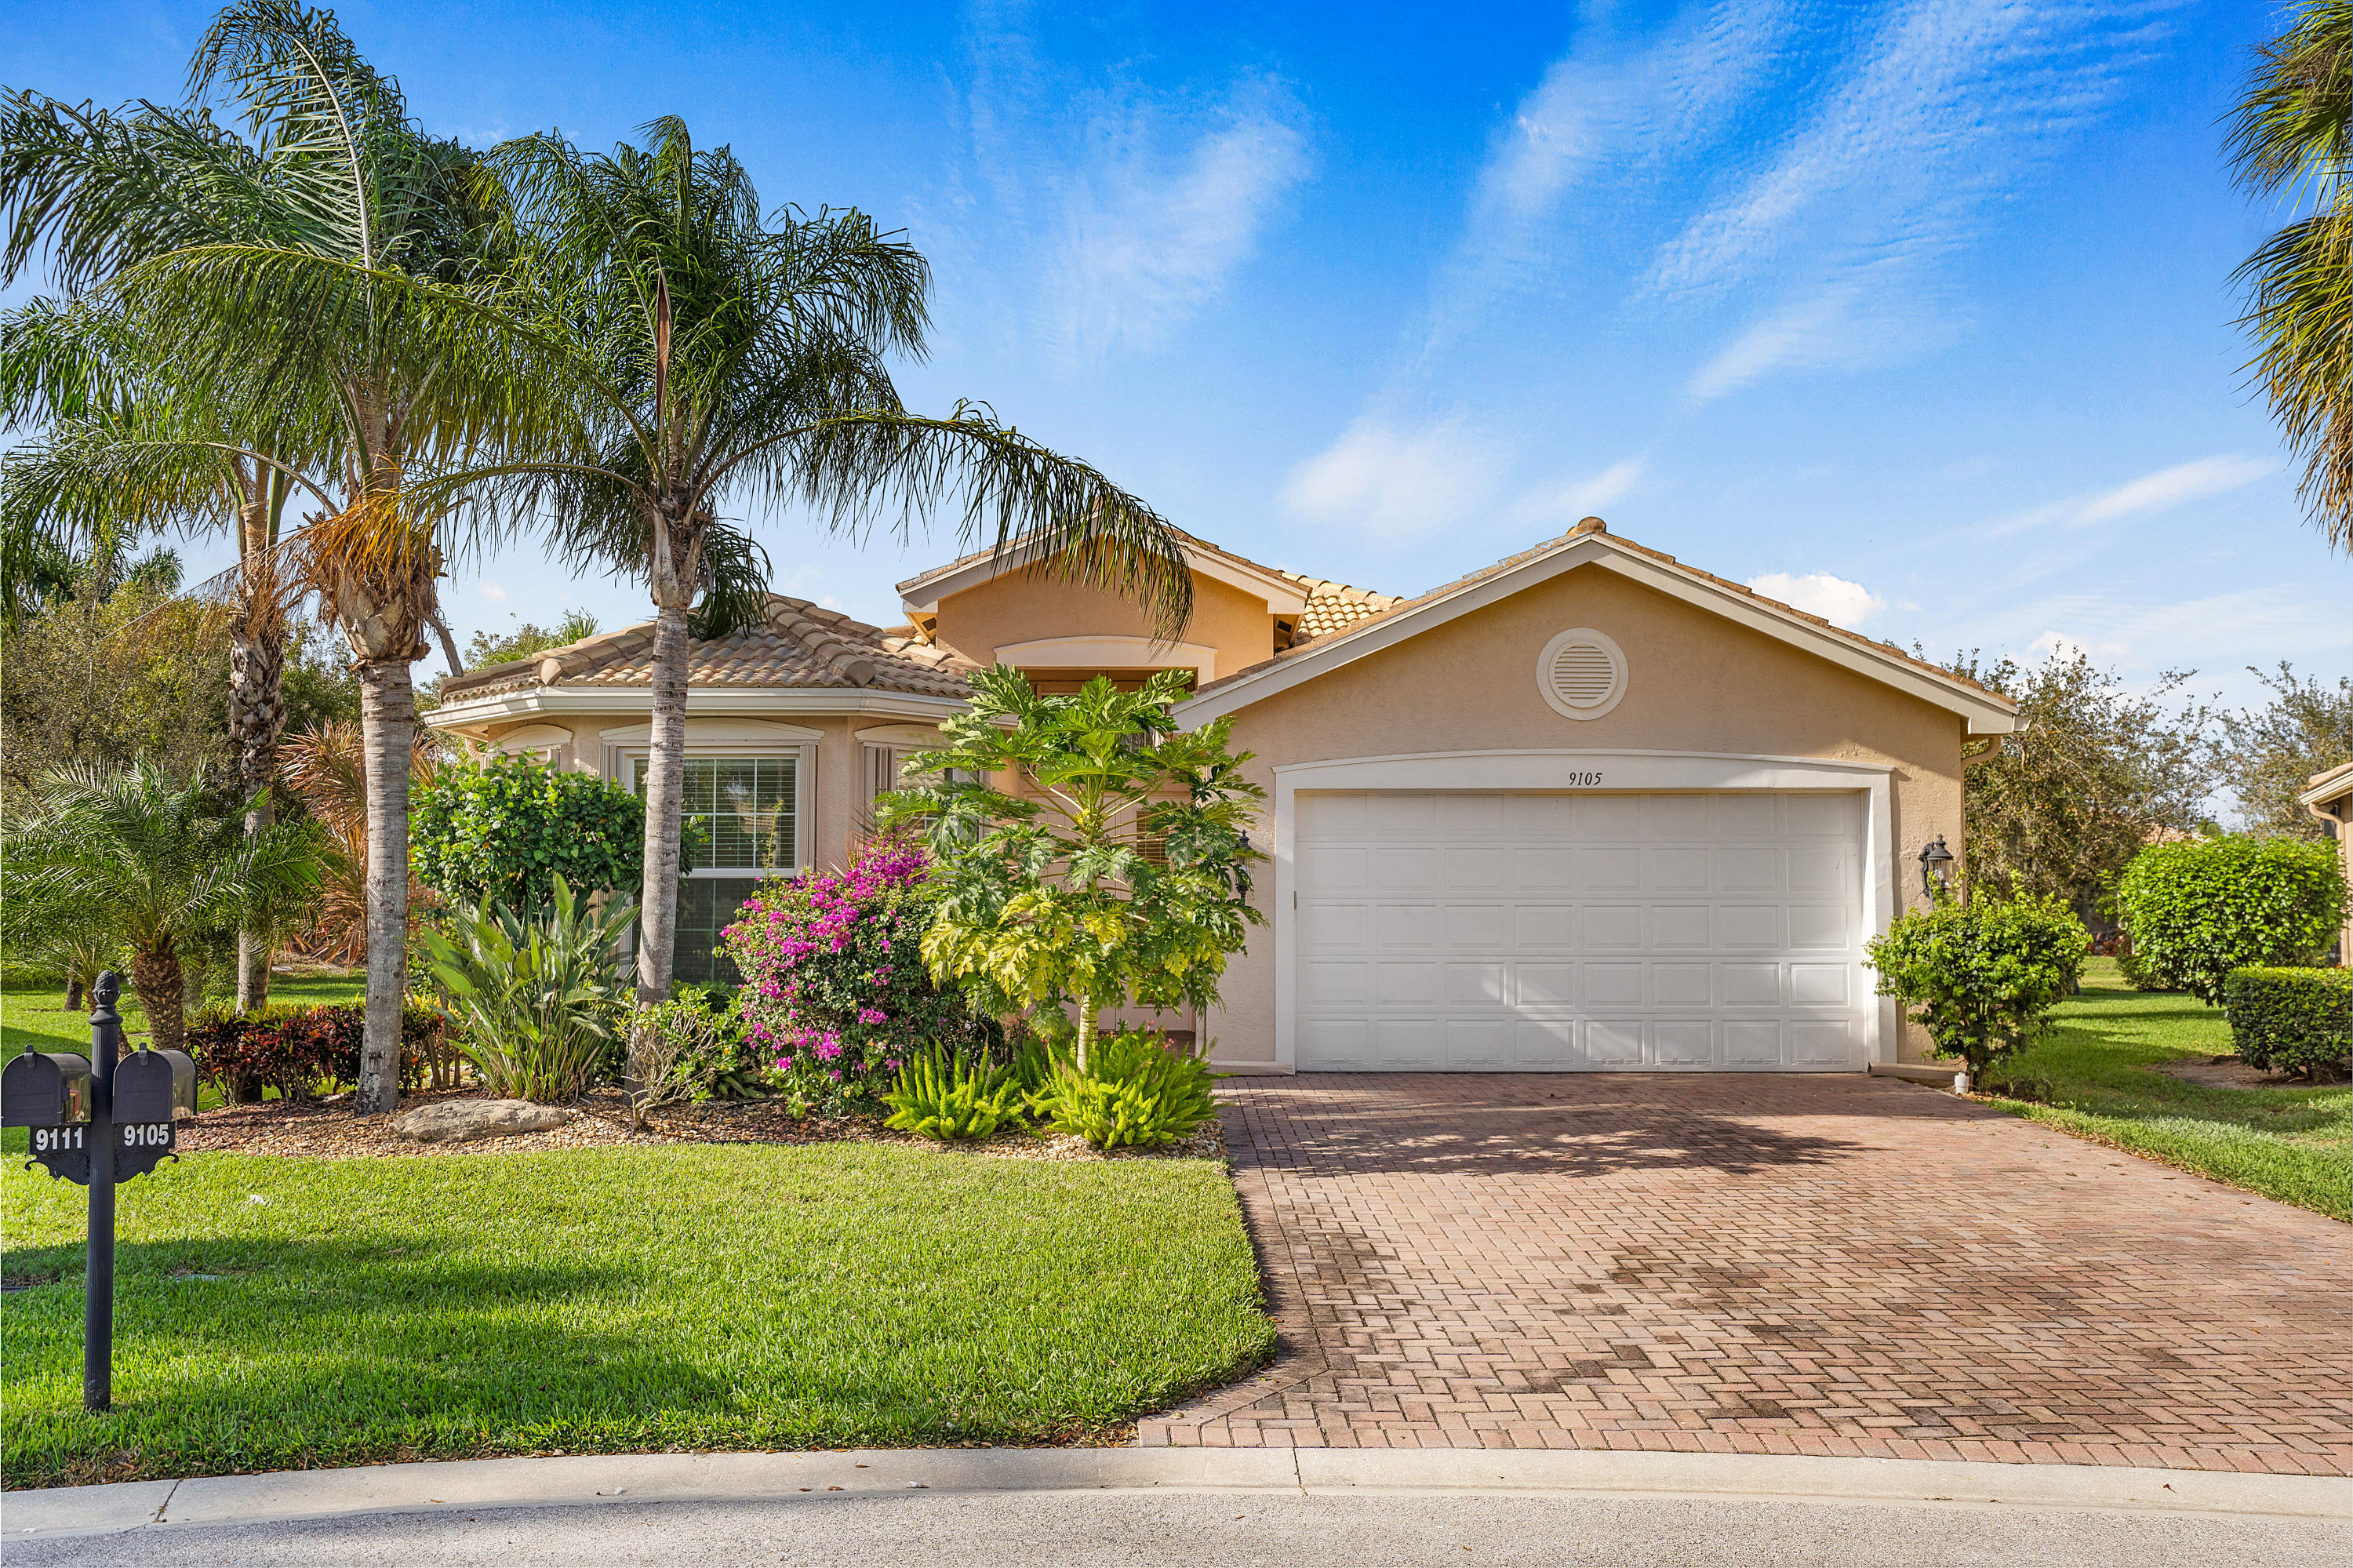 9566 Sail Palm Court Boynton Beach 33473 - photo